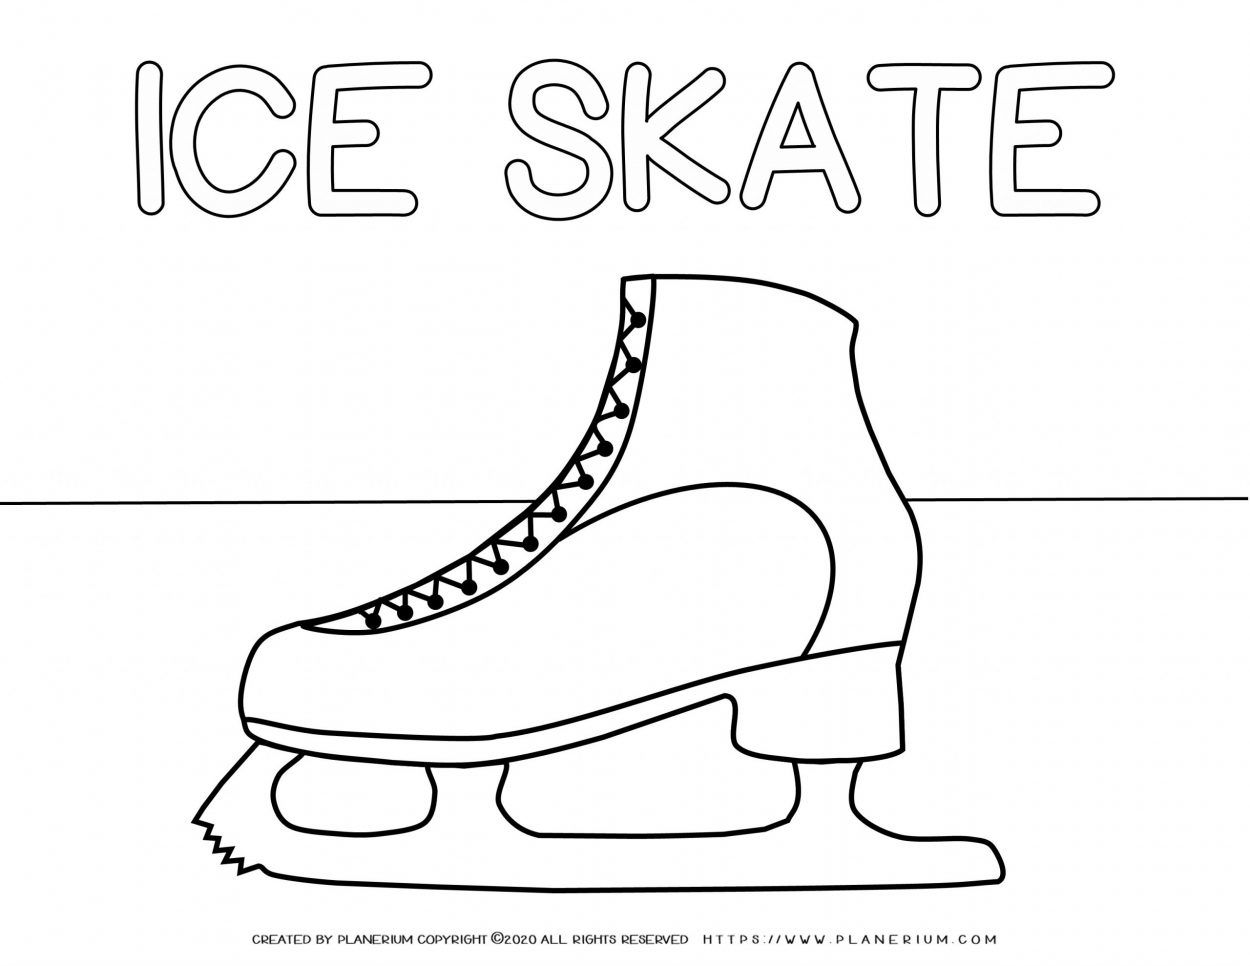 Printable Ice Skate Coloring Page - Get Coloring Pages | 966x1250